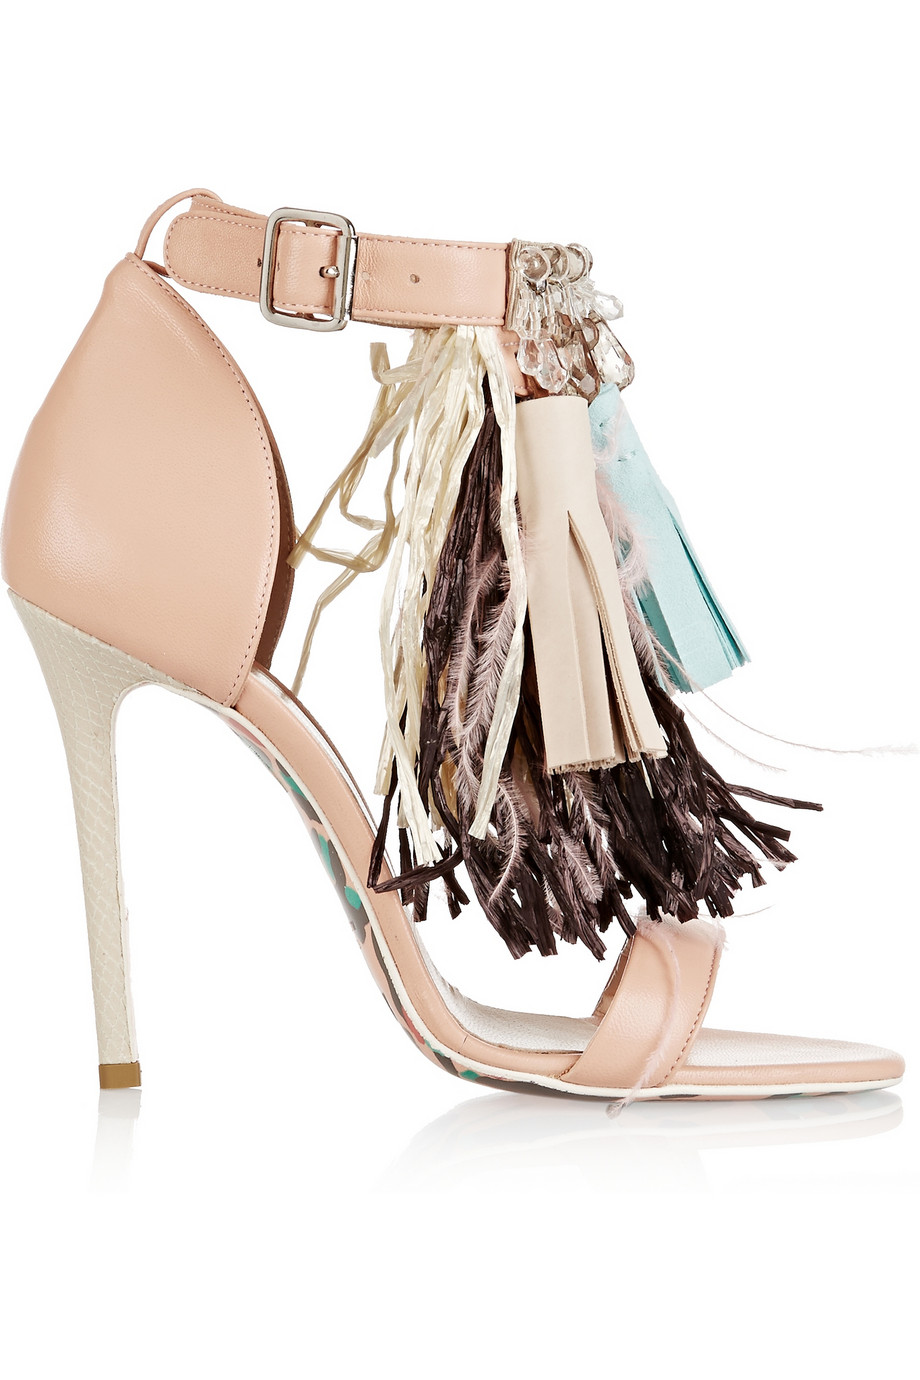 4a74f7812d993 ... the designers that have been enticing us with their tassel embellished  sandals season after season. But it wasn t until we saw Ulla Johnson s Luz  heels